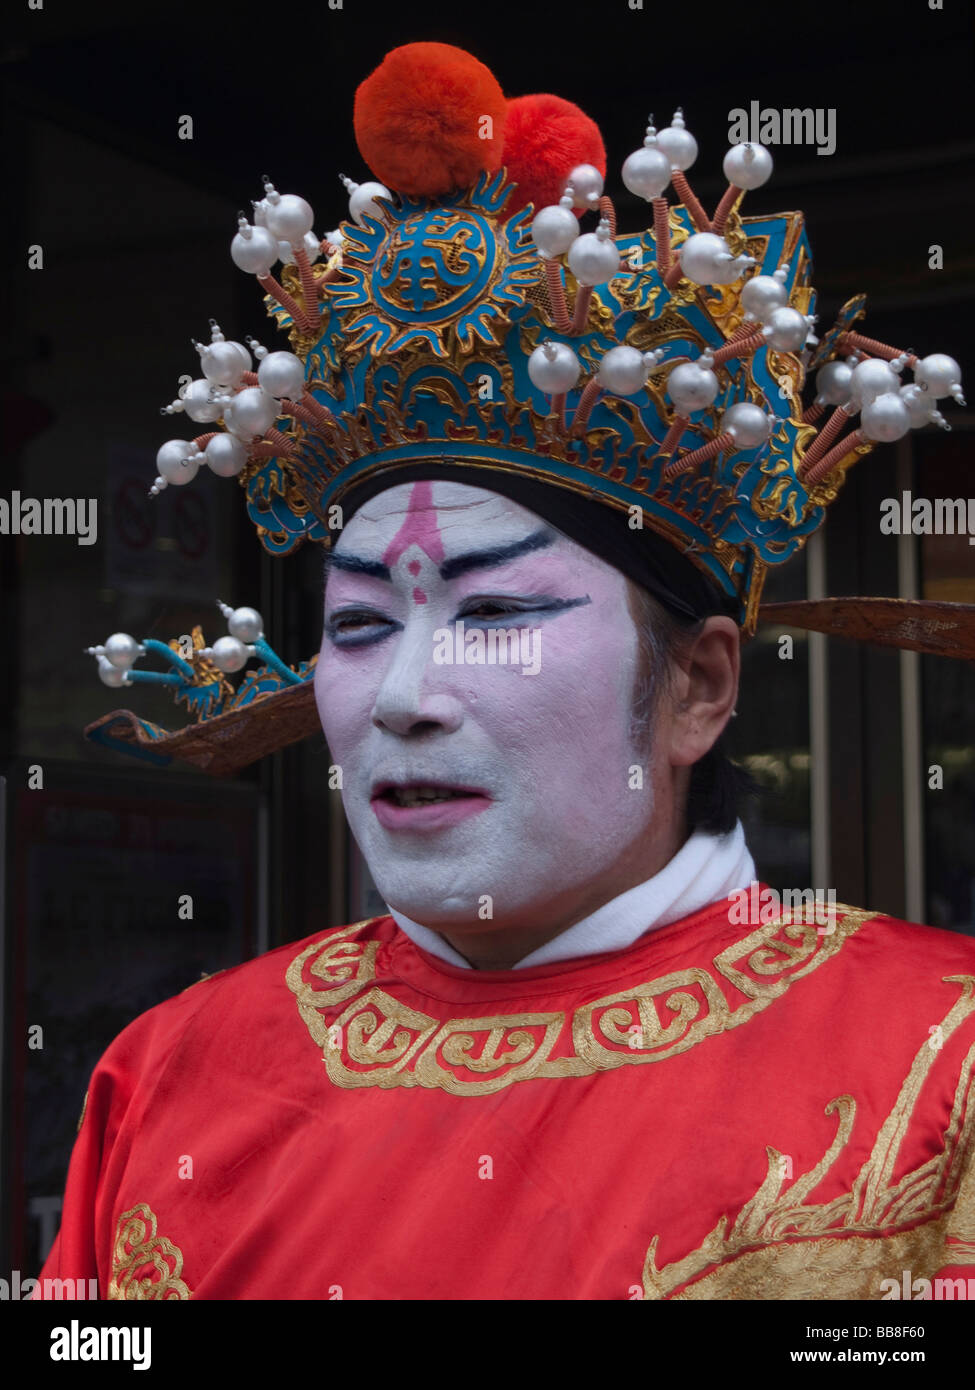 Chinese man wearing traditional garments and make-up, spring festival, Paris, France, Europe - Stock Image